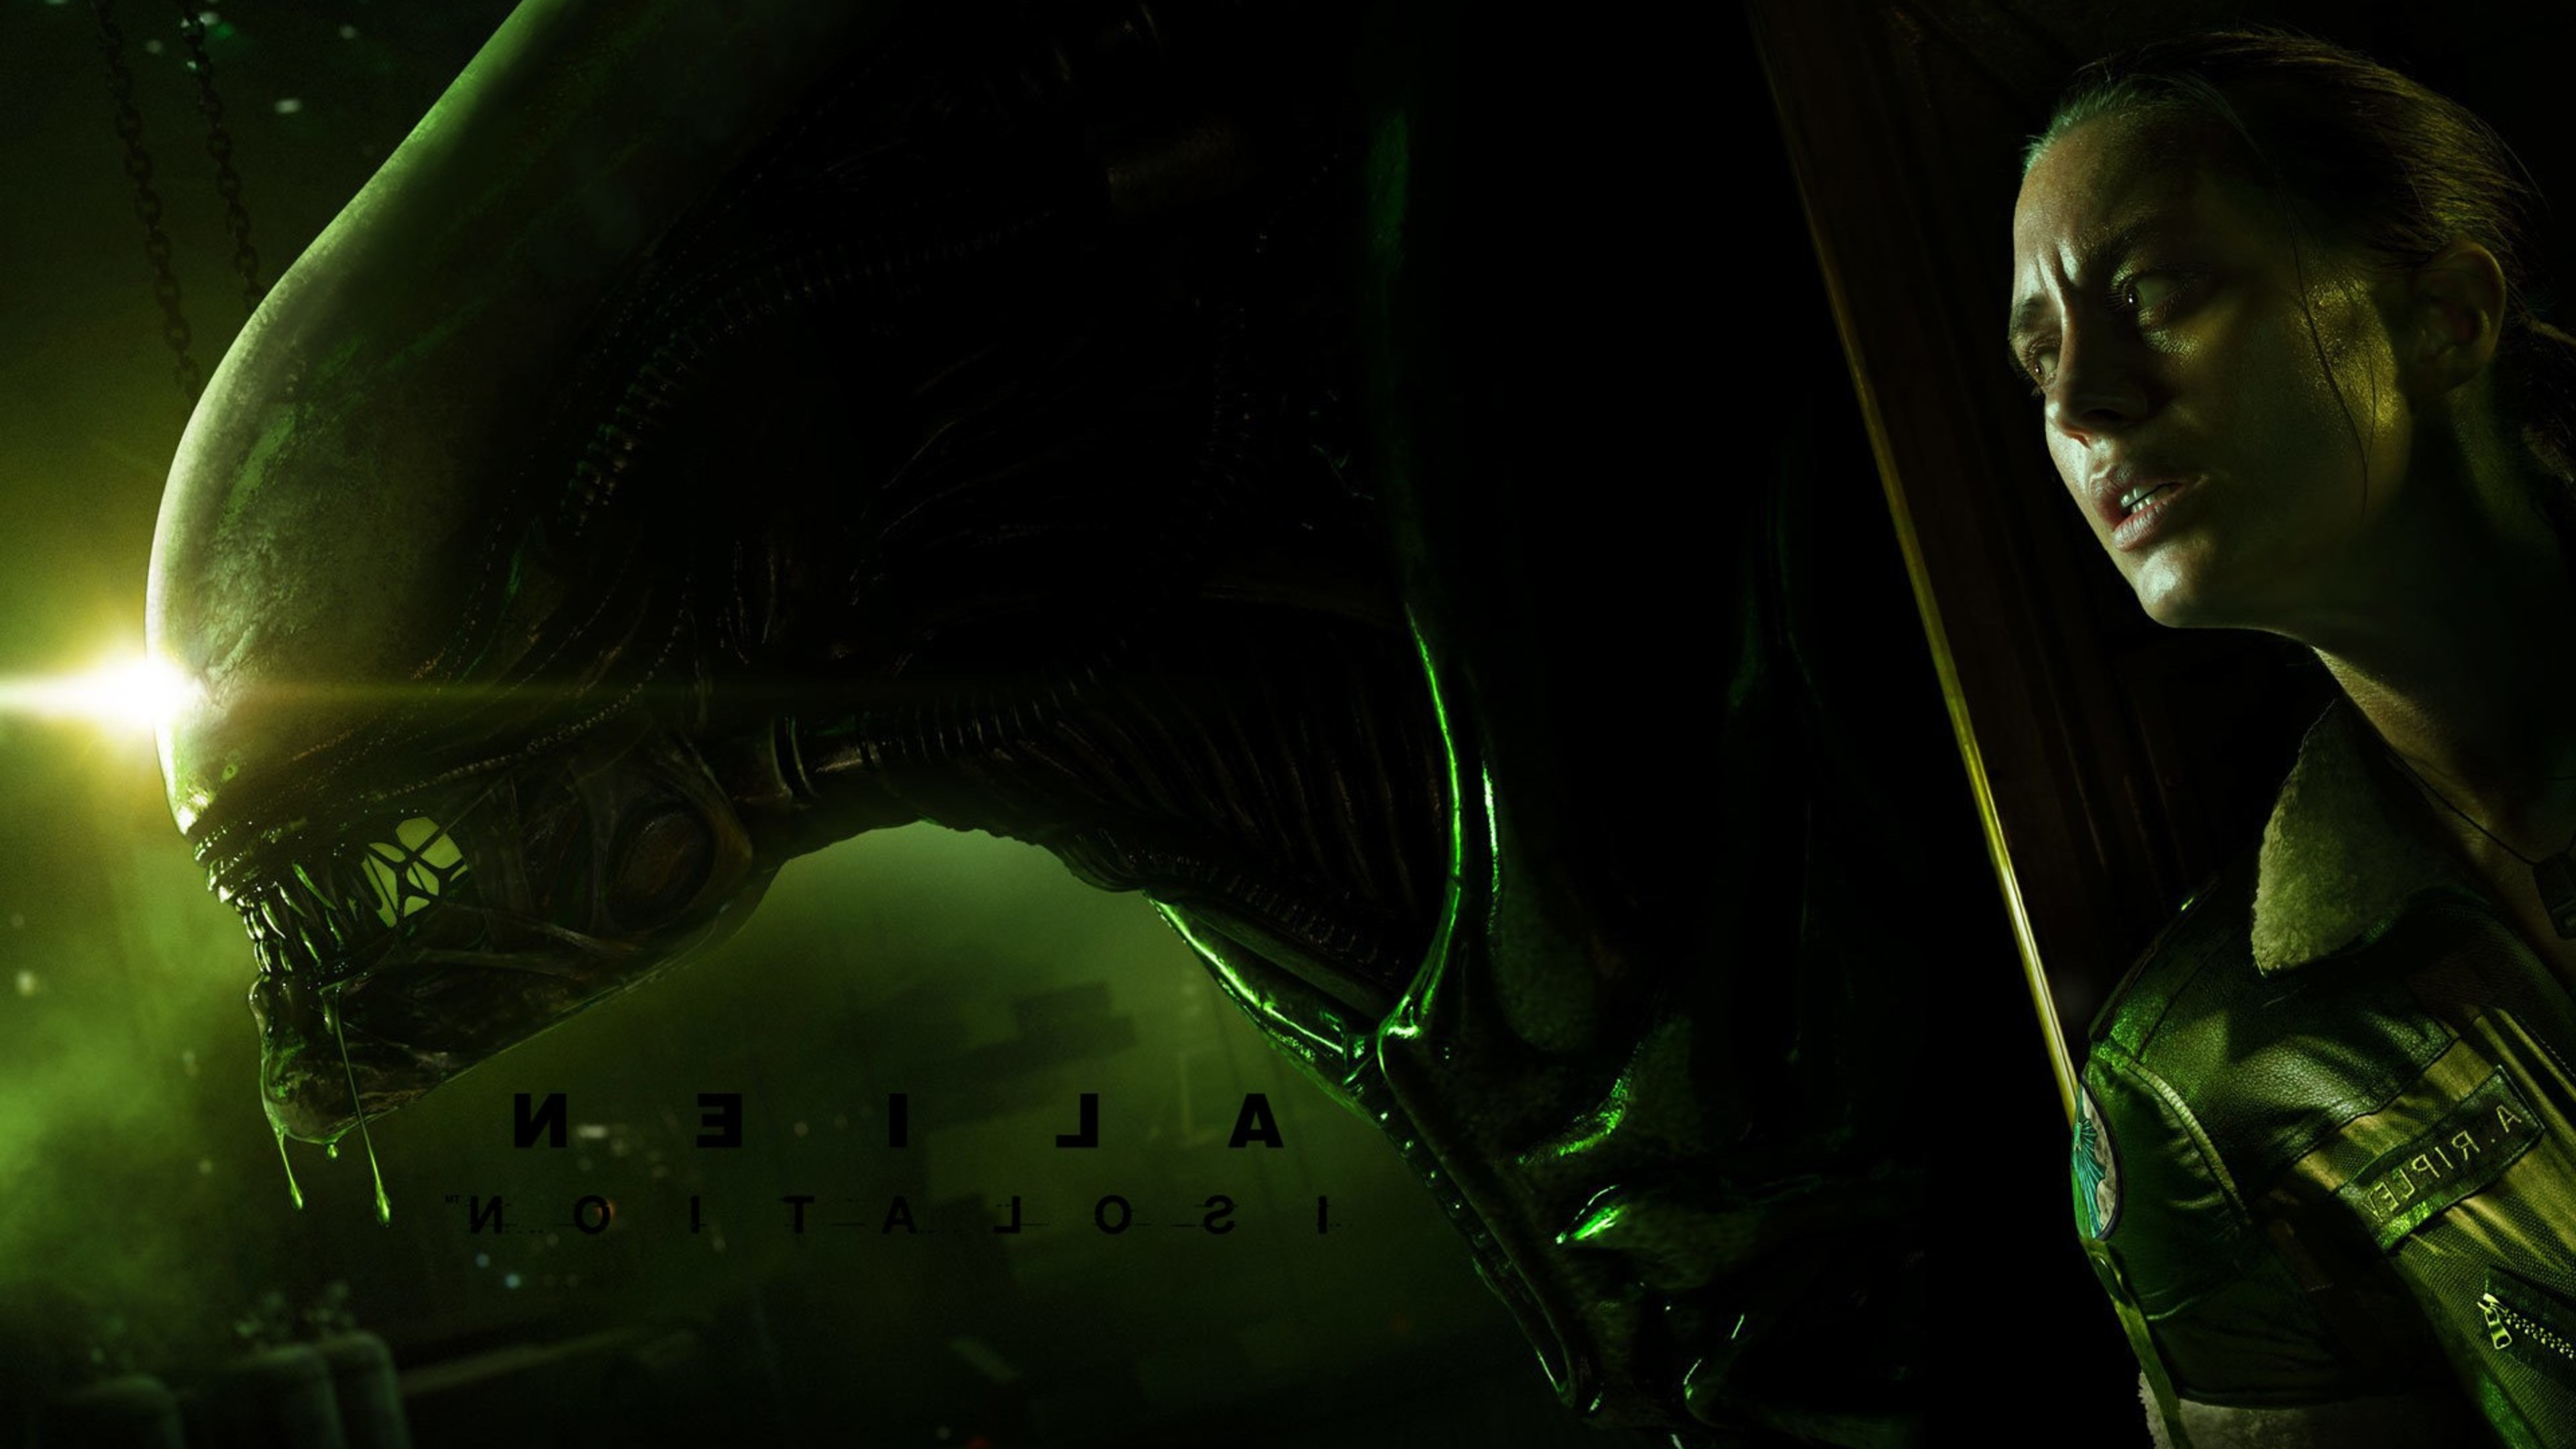 Alien Isolation Hd Games 4k Wallpapers Images